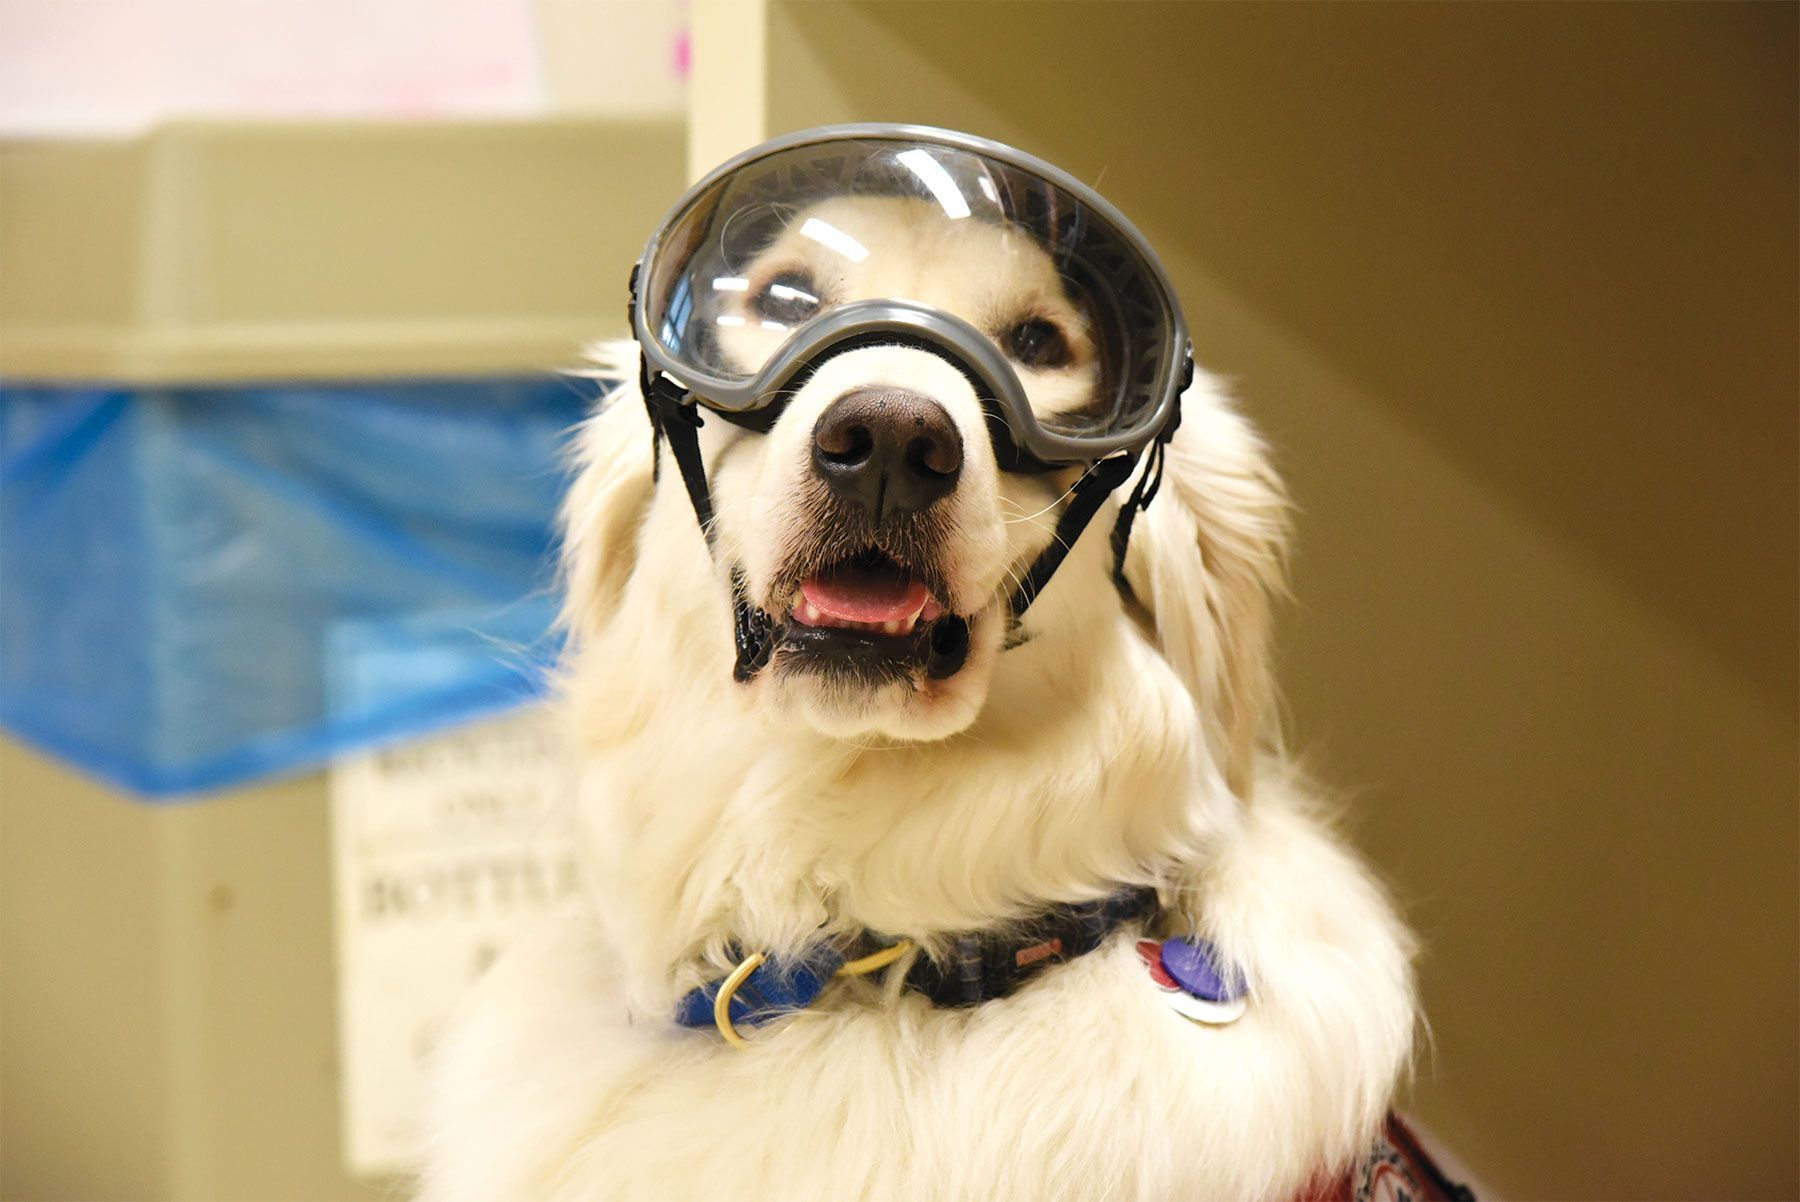 When Should Service Dogs Be Admitted into the Lab?